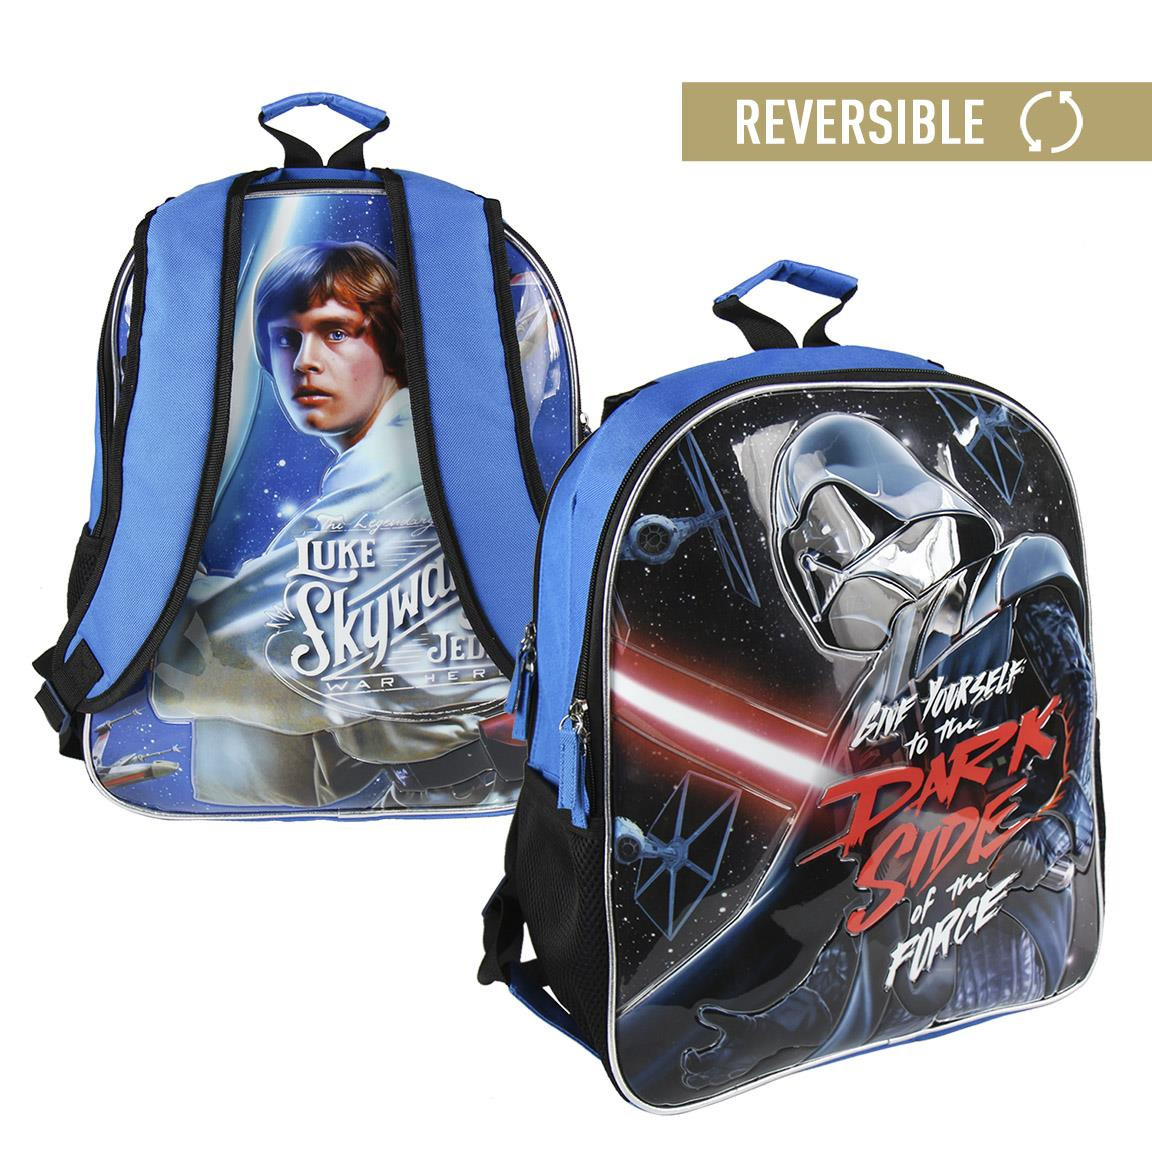 Children's backpack Star Wars reversible with two illustrations - Home and More